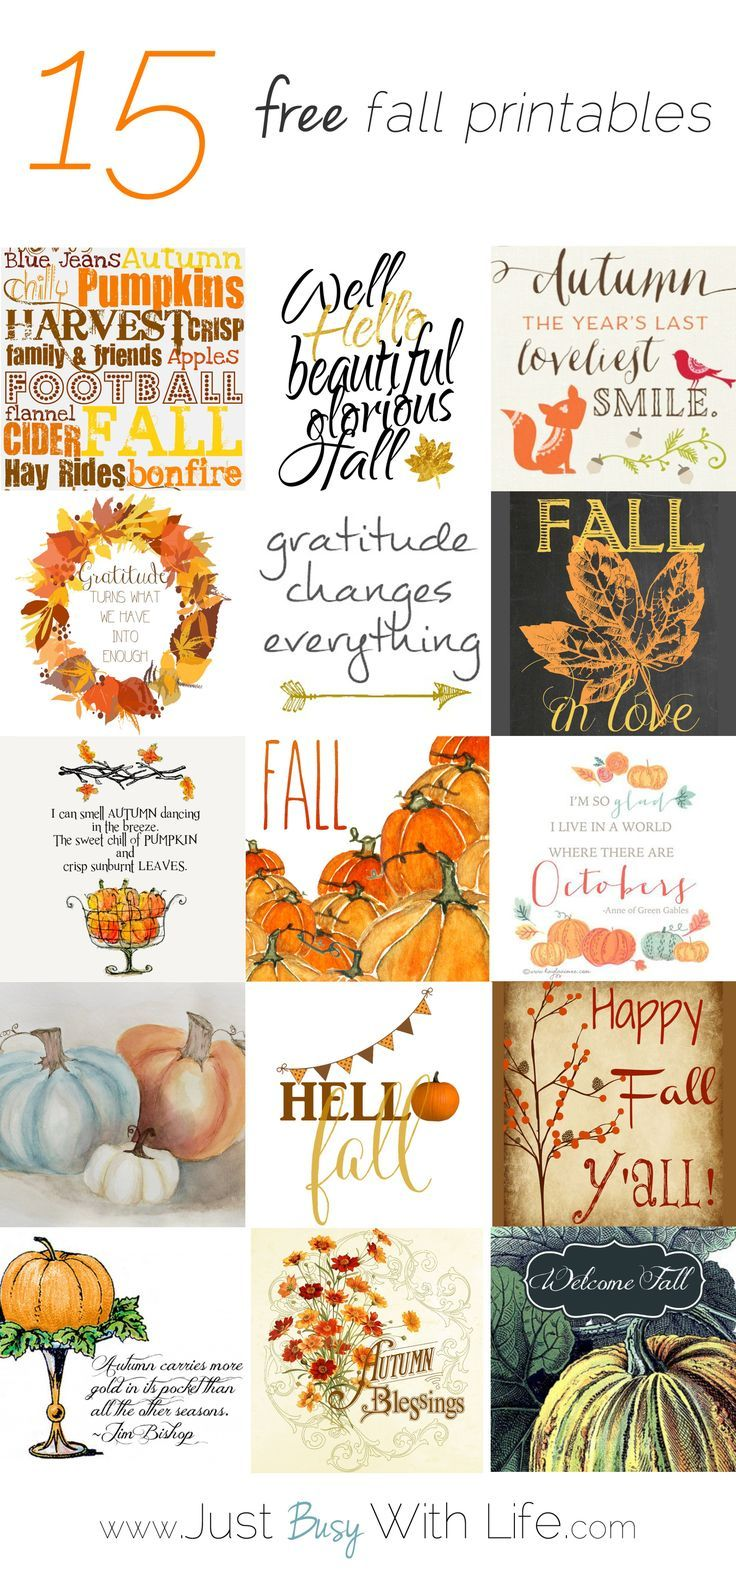 15 Free Fall Printables | Just Busy With Life